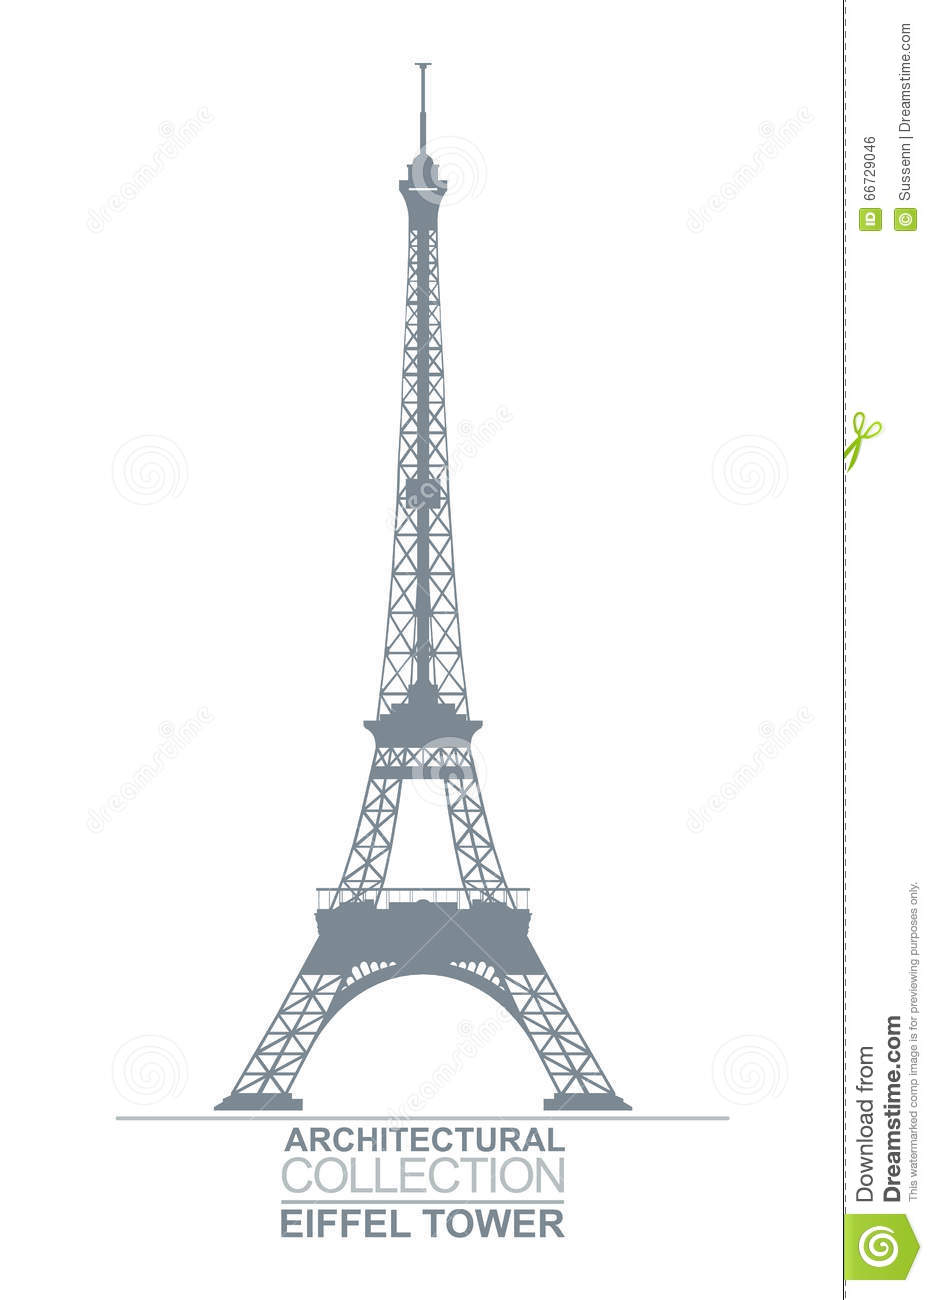 Eiffel tower drawing stock vector illustration of architecture download comp thecheapjerseys Gallery